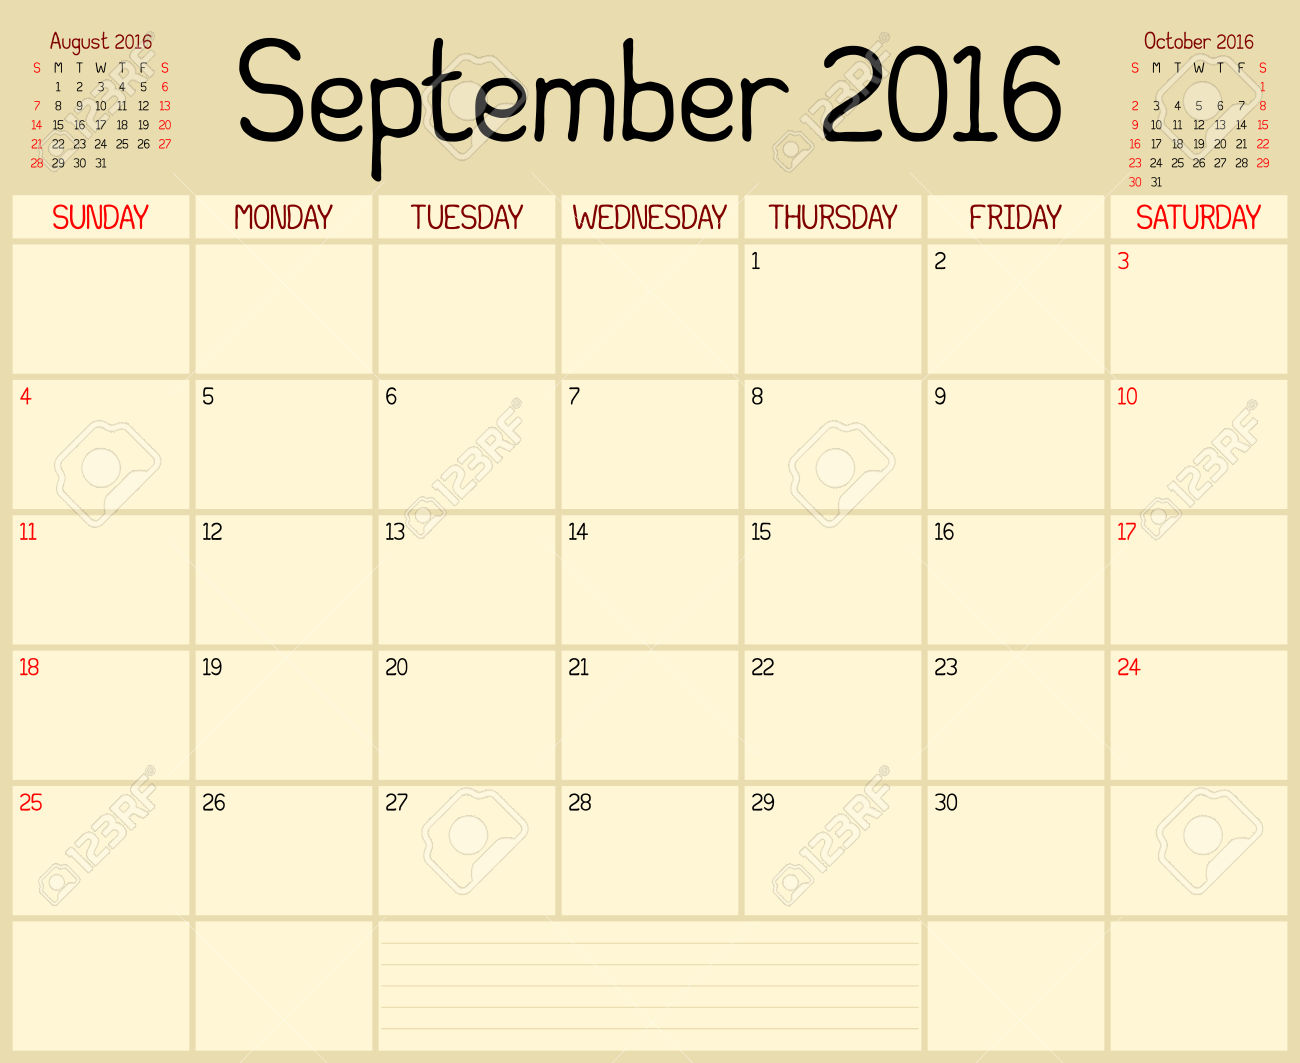 Calendar Planner For : Calendar planner september fotolip rich image